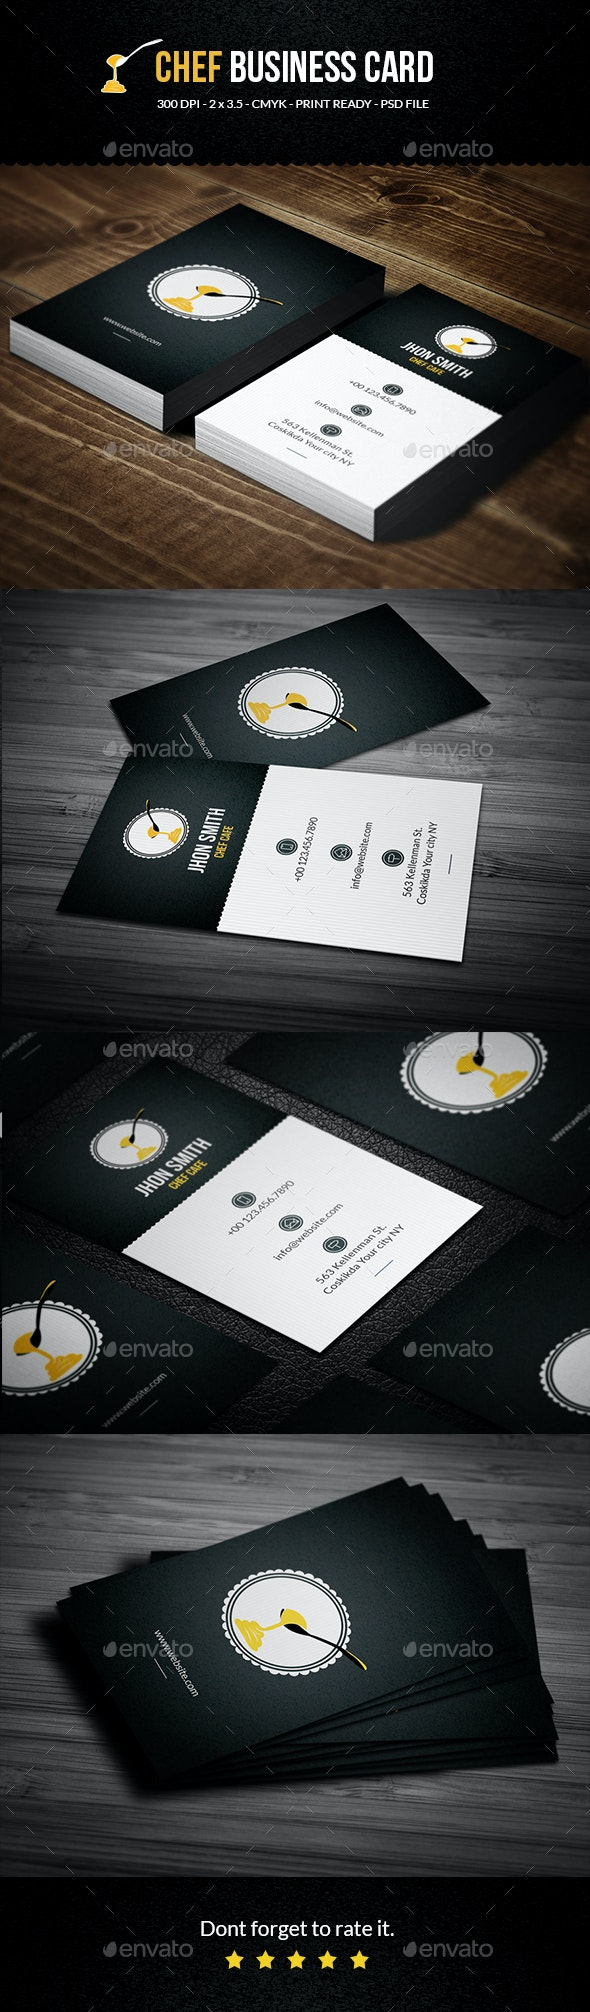 Chef Cafe Business Card - Business Cards Print Templates